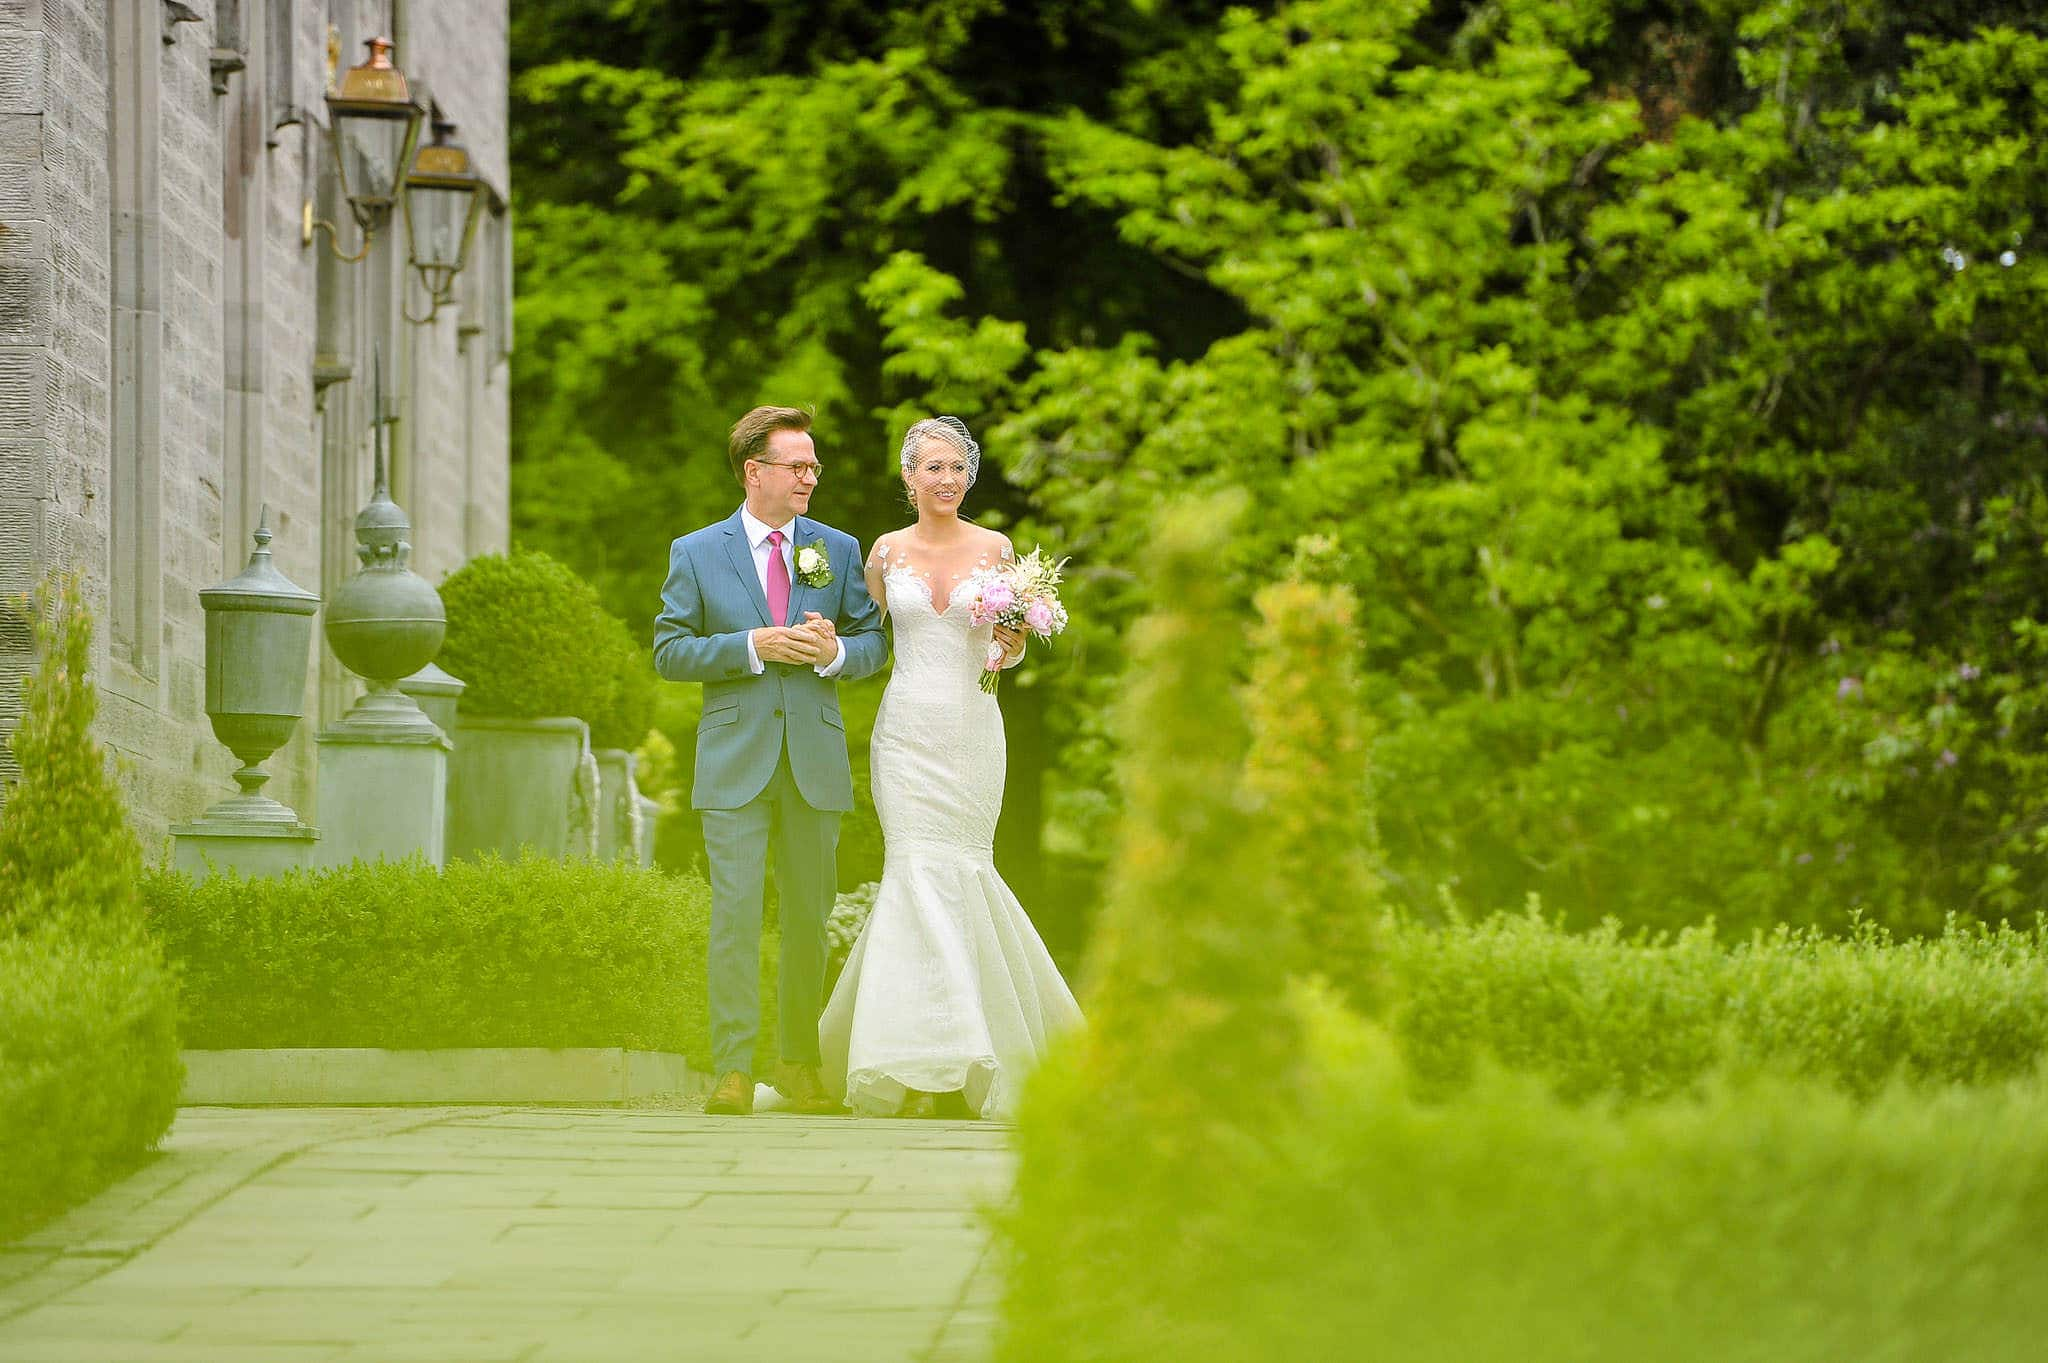 Midlands wedding photography - 2015 Review 27